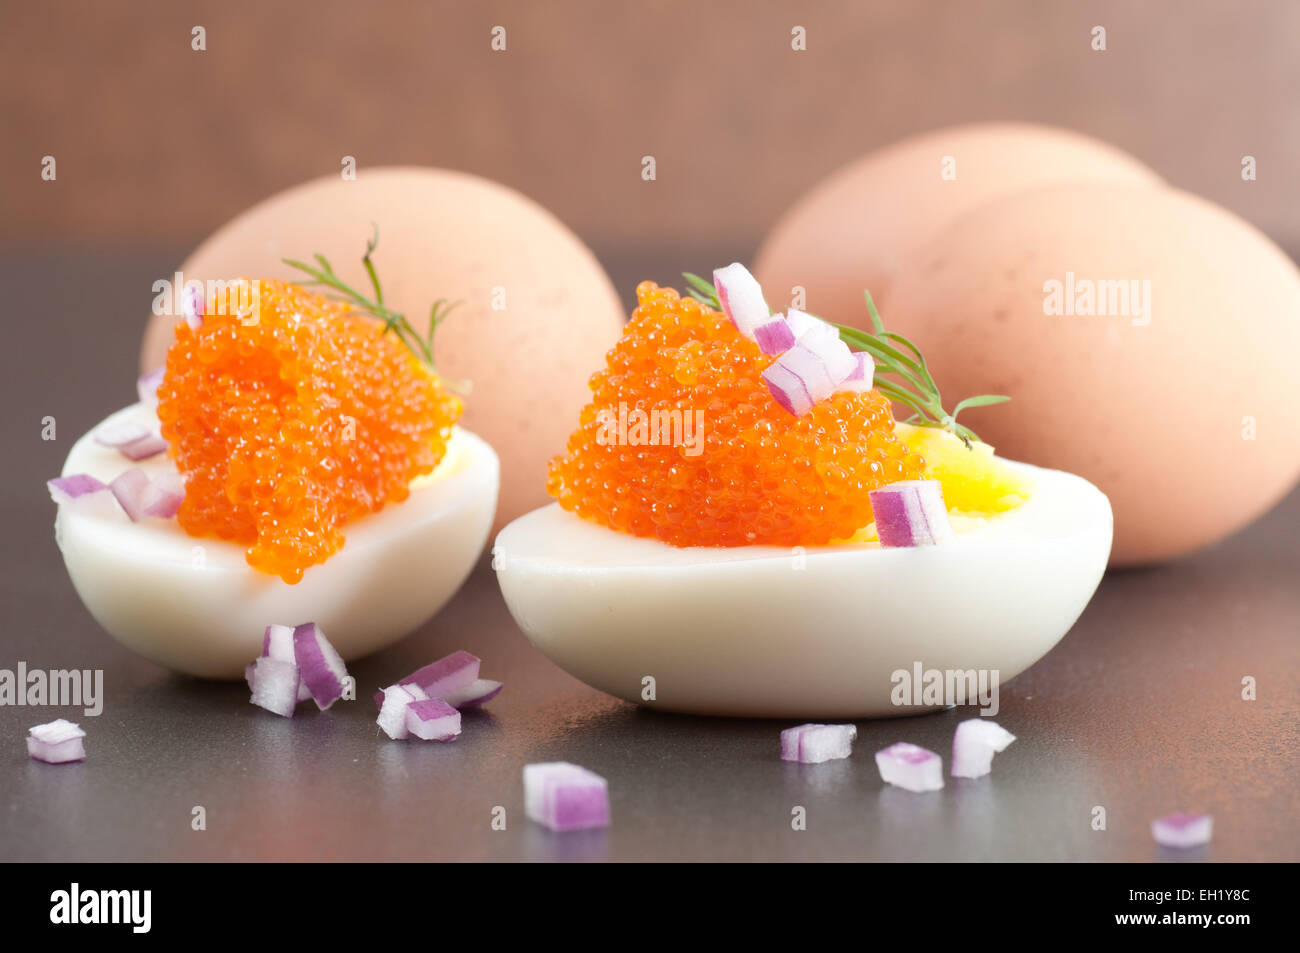 Egg halves with caviar, spanish onion and dill. - Stock Image